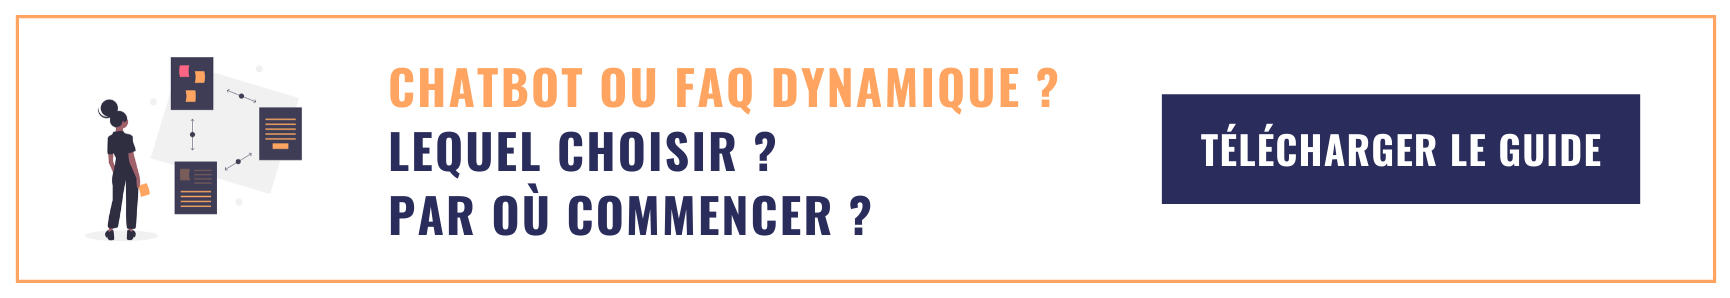 CTA grand - Chatbot Vs FAQ dynamique